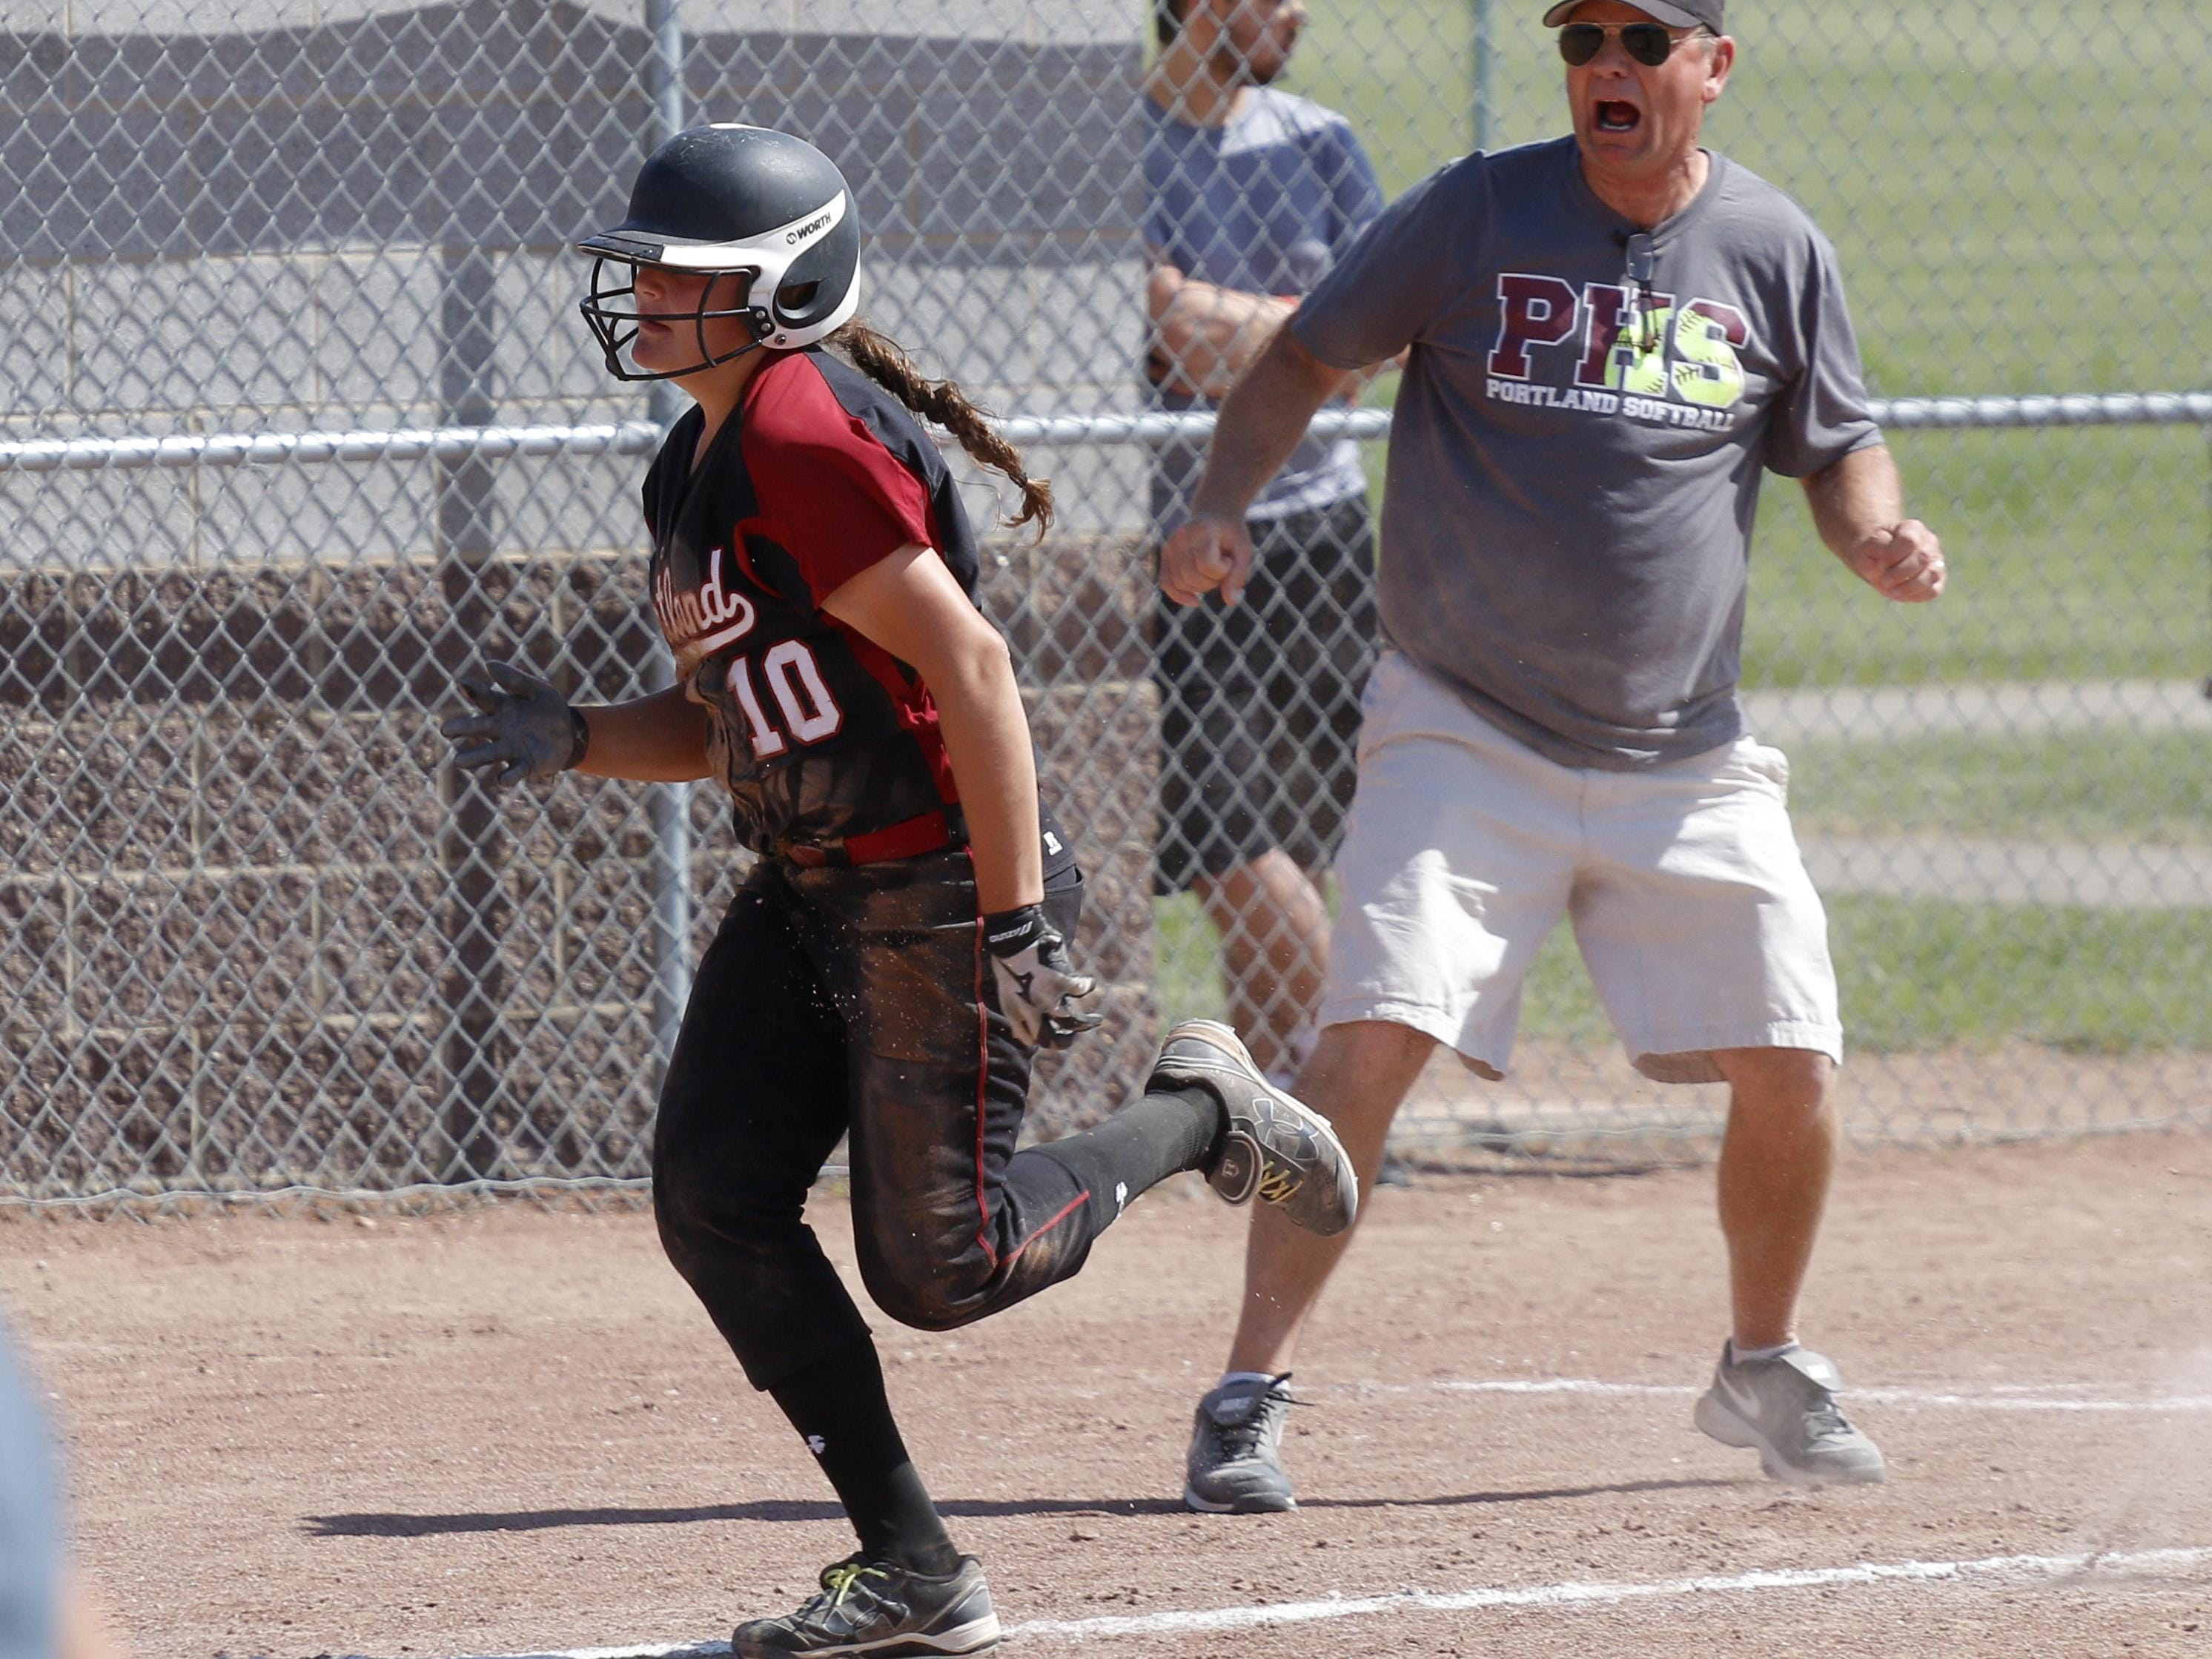 Portland coach Jack Anderson yells encouragement to Olivia Roe as she runs toward home plate during the regional final.